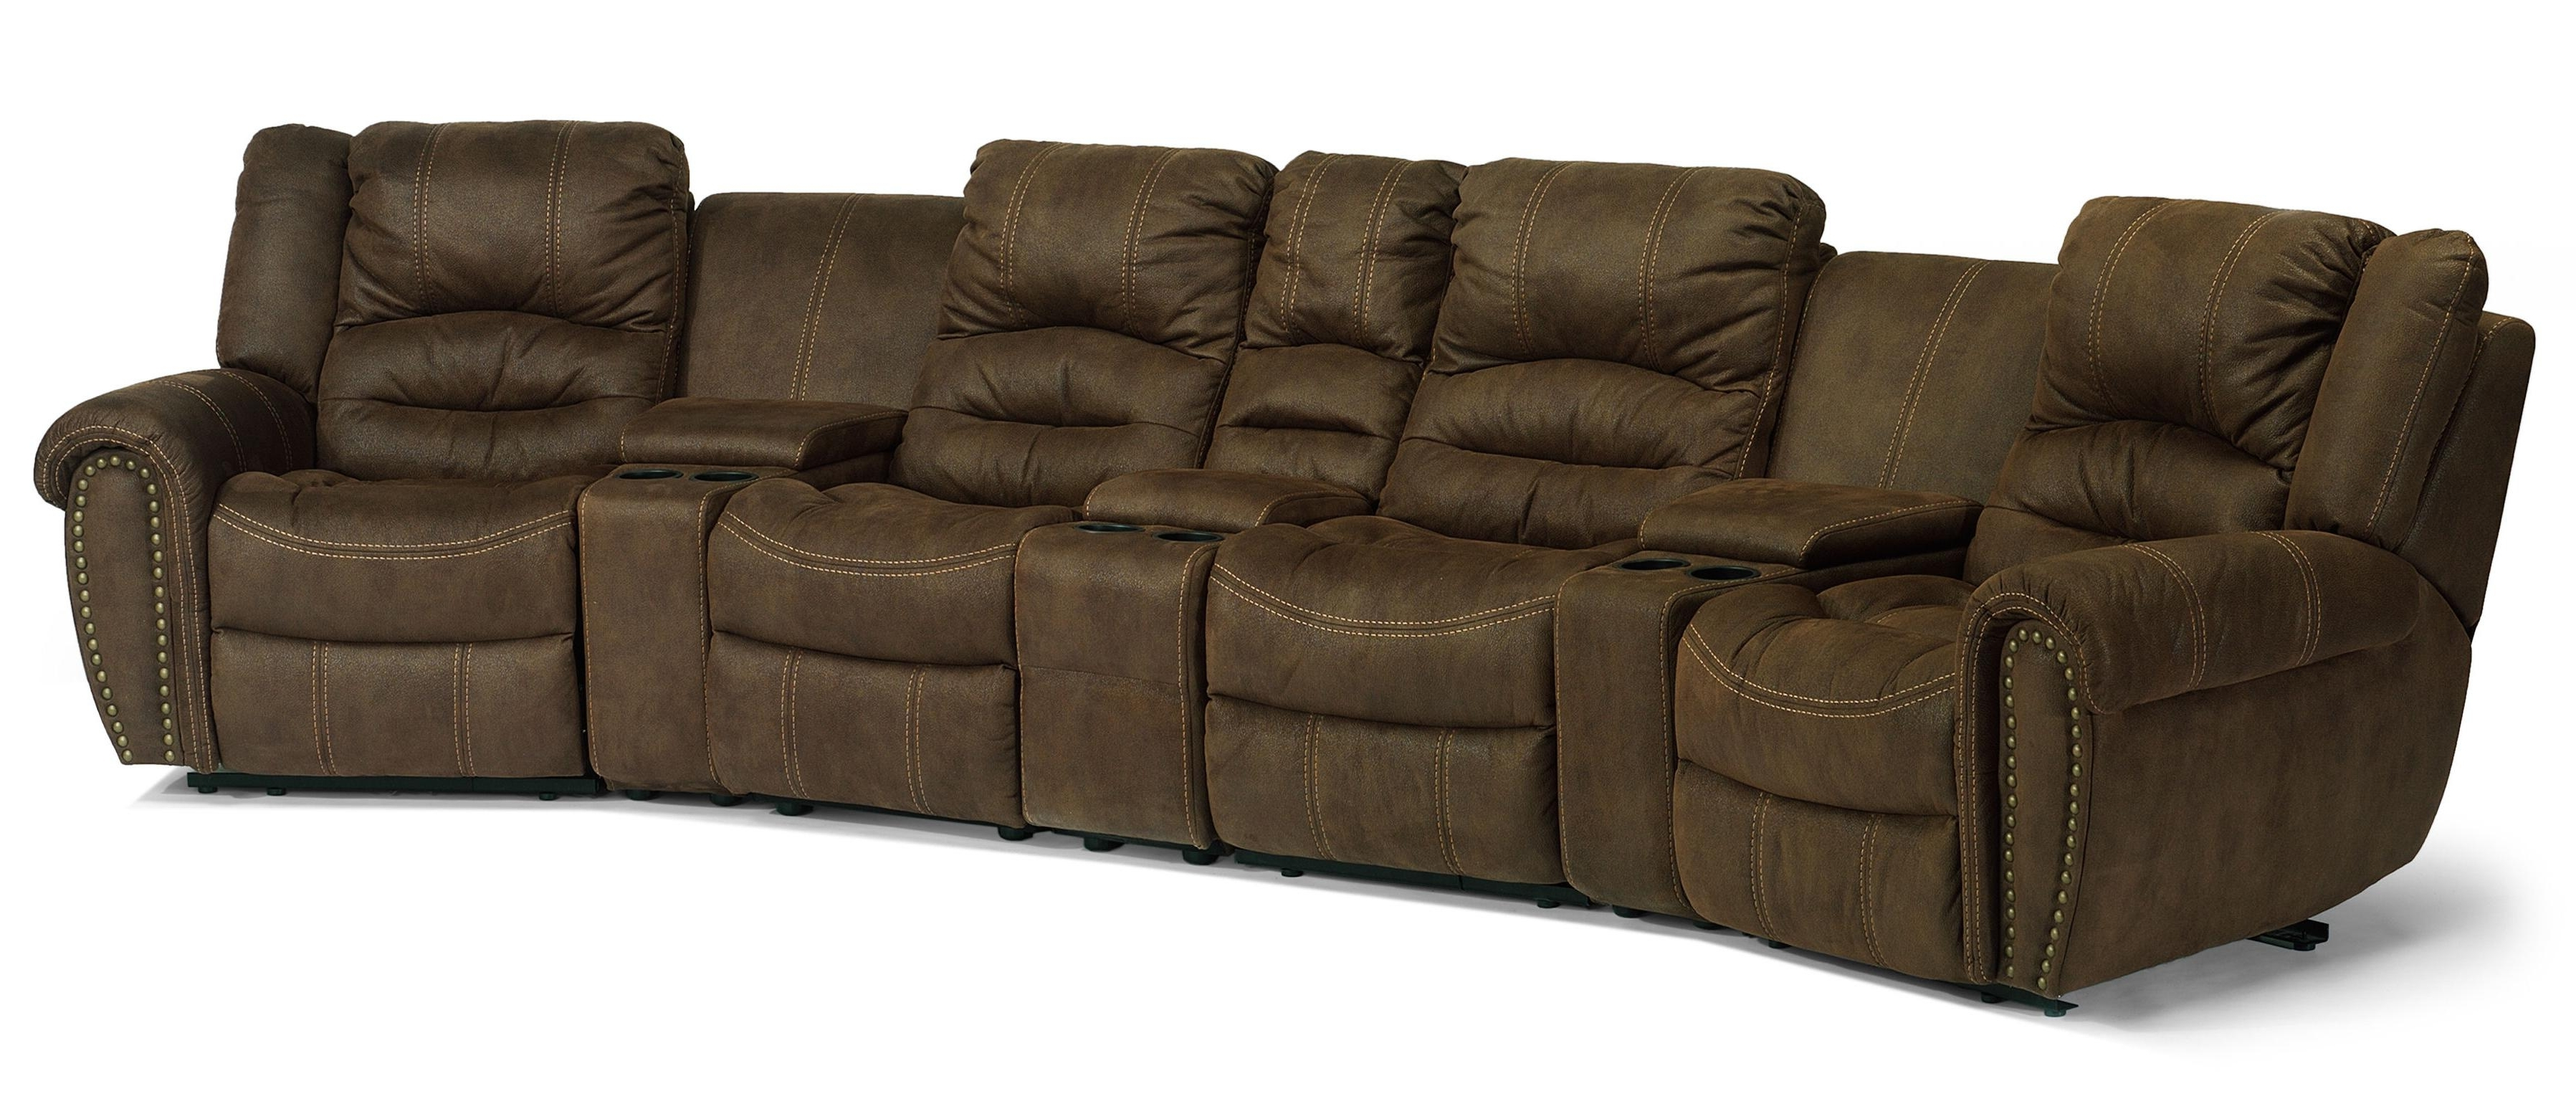 Fashionable Flexsteel Latitudes – New Town Curved Reclining Sectional Sofa With Regard To Kansas City Sectional Sofas (View 10 of 20)